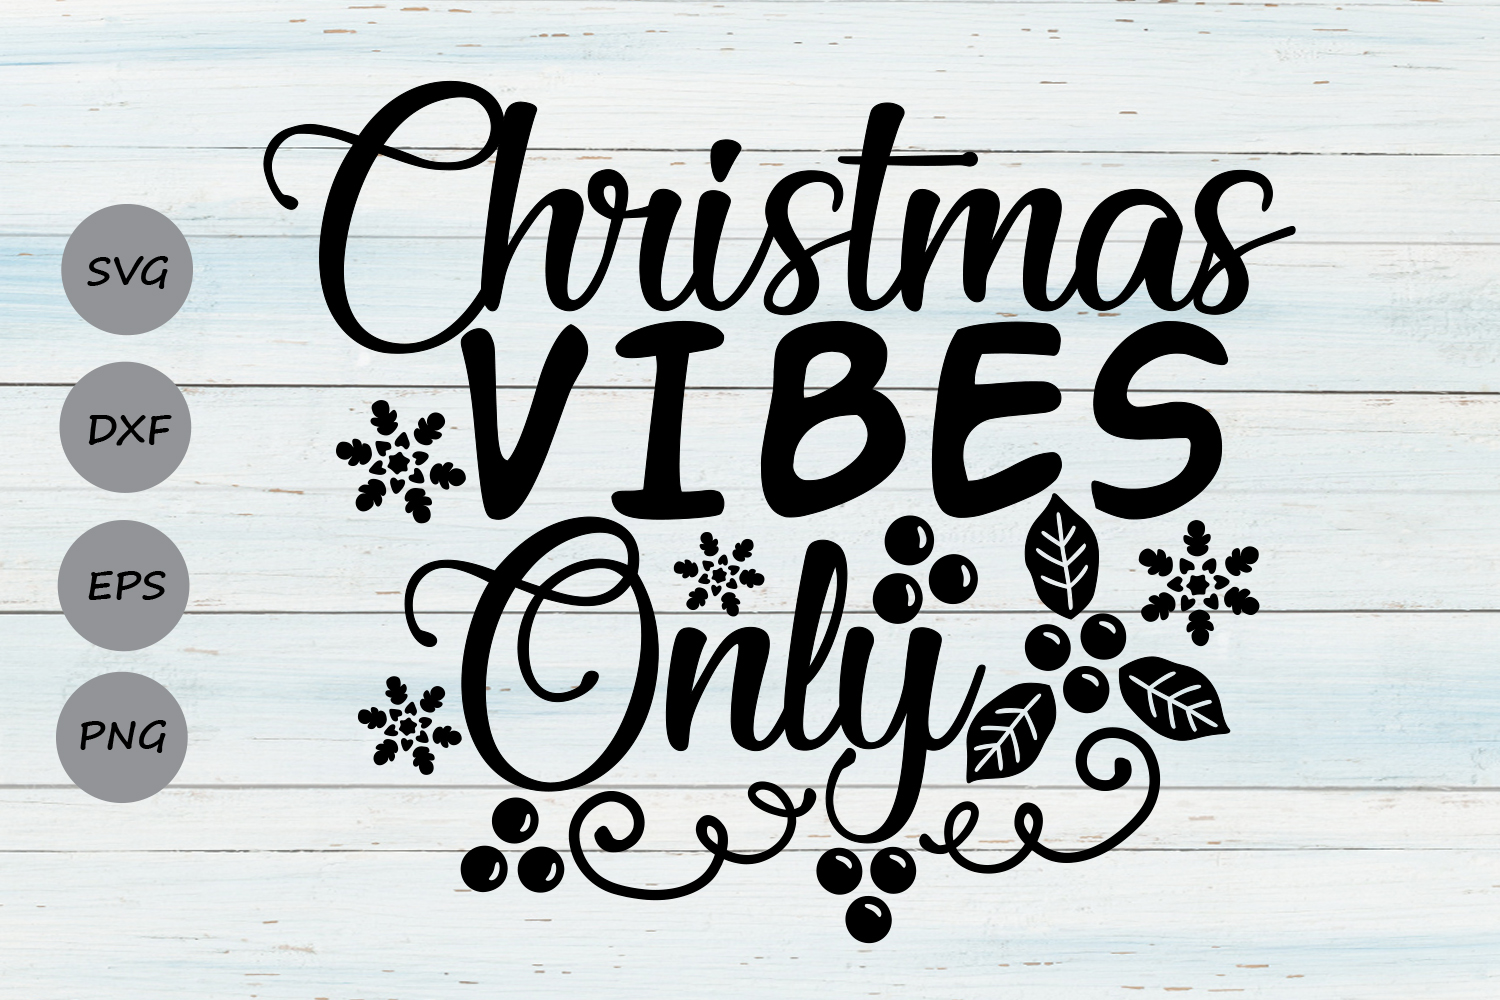 Download Free Christmas Vibes Only Graphic By Cosmosfineart Creative Fabrica for Cricut Explore, Silhouette and other cutting machines.